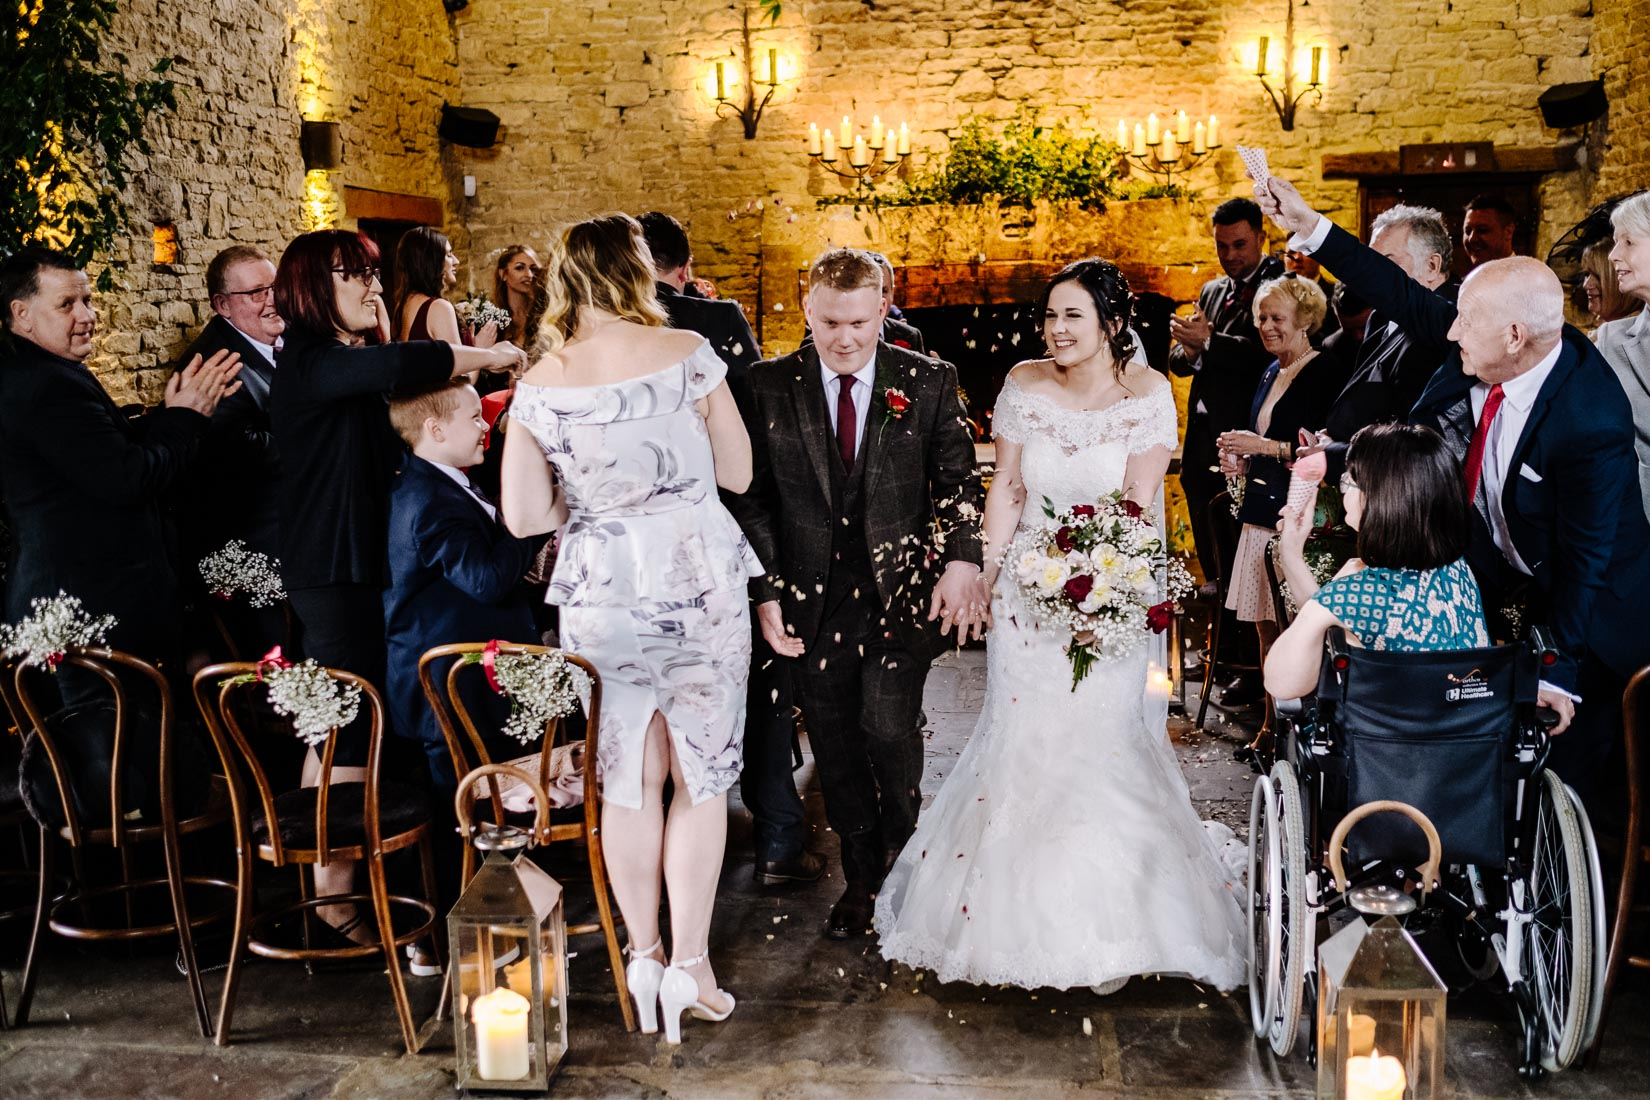 A Bride and Groom covered in confetti leaving their wedding at the Bay Tree, Burford.